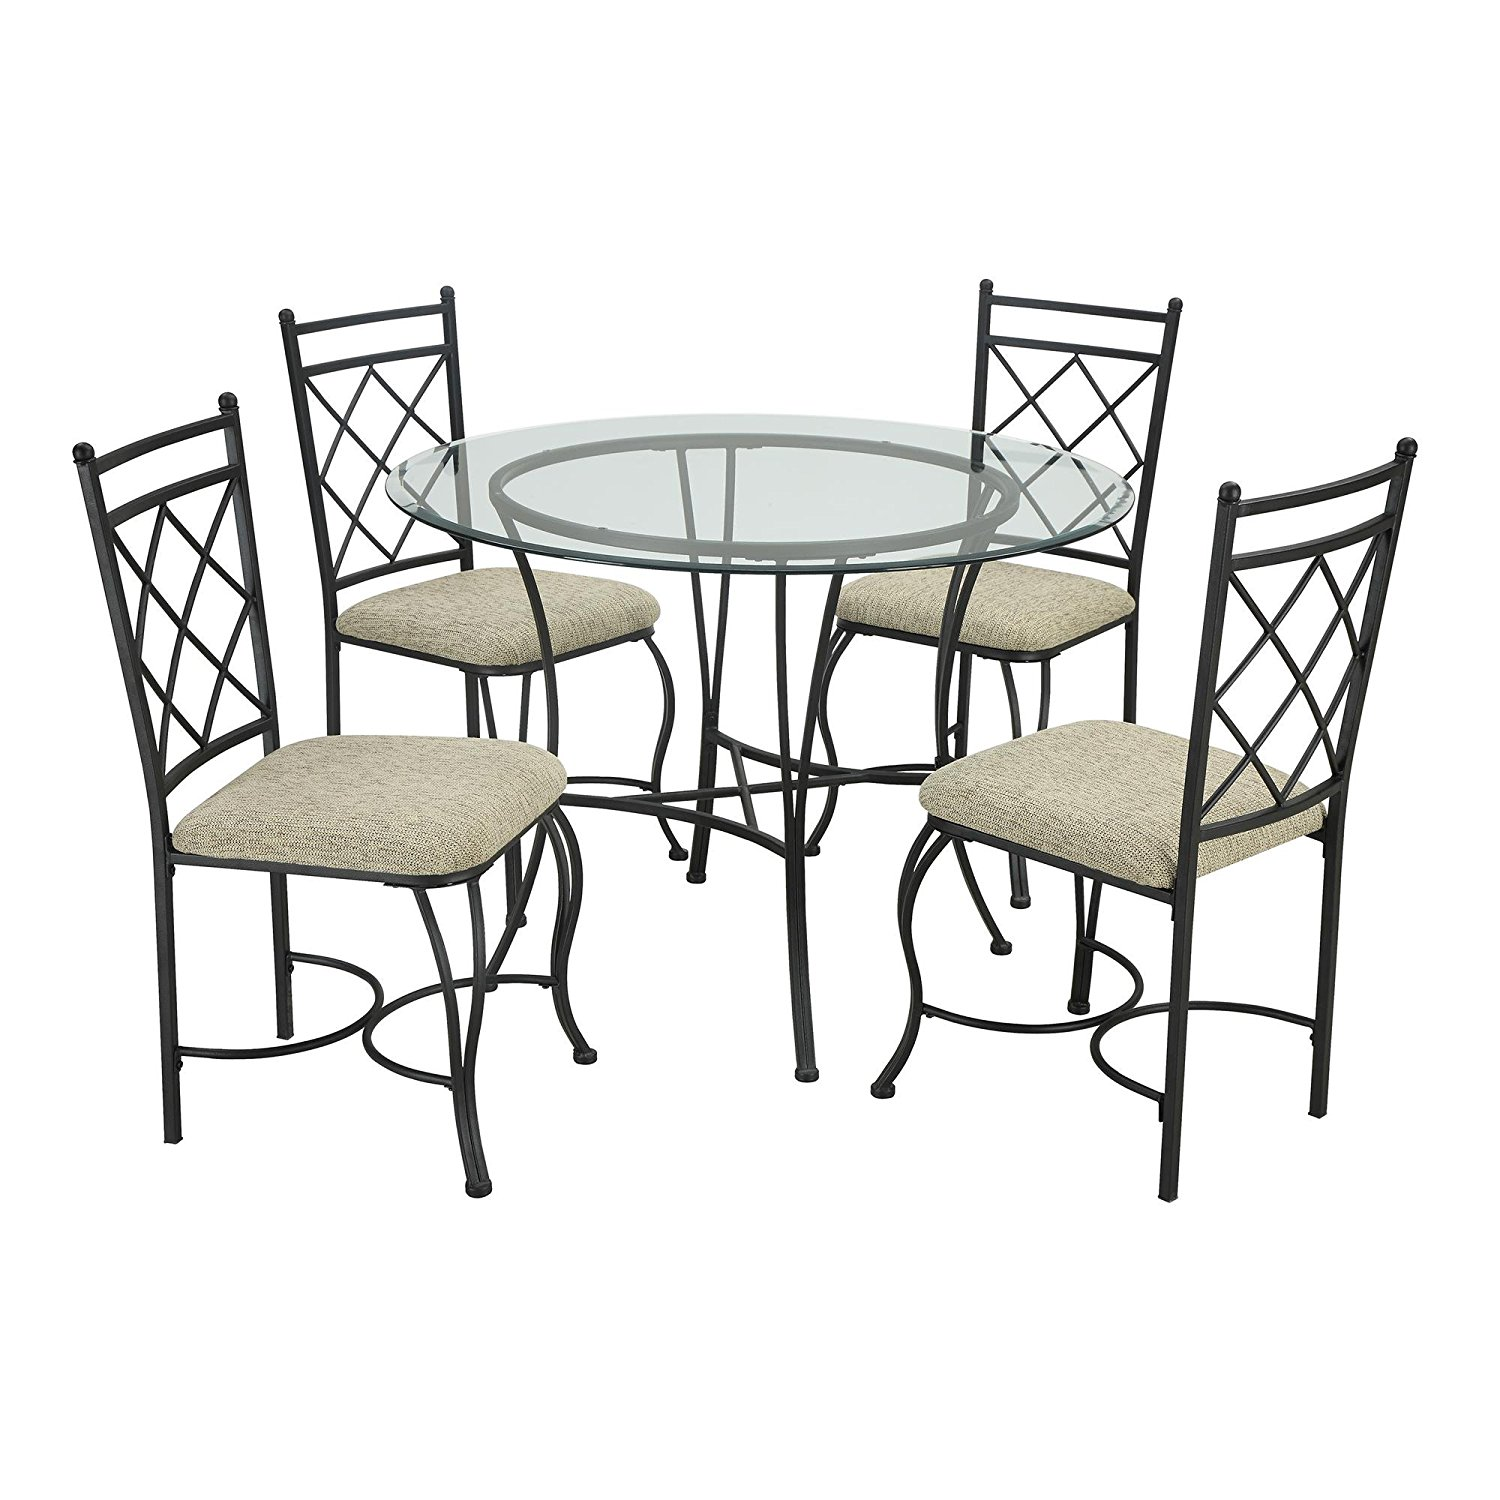 Get Quotations Comfortable And Stylish Traditional Styling Five Piece Glass Top Metal Dining Set Clear Beveled